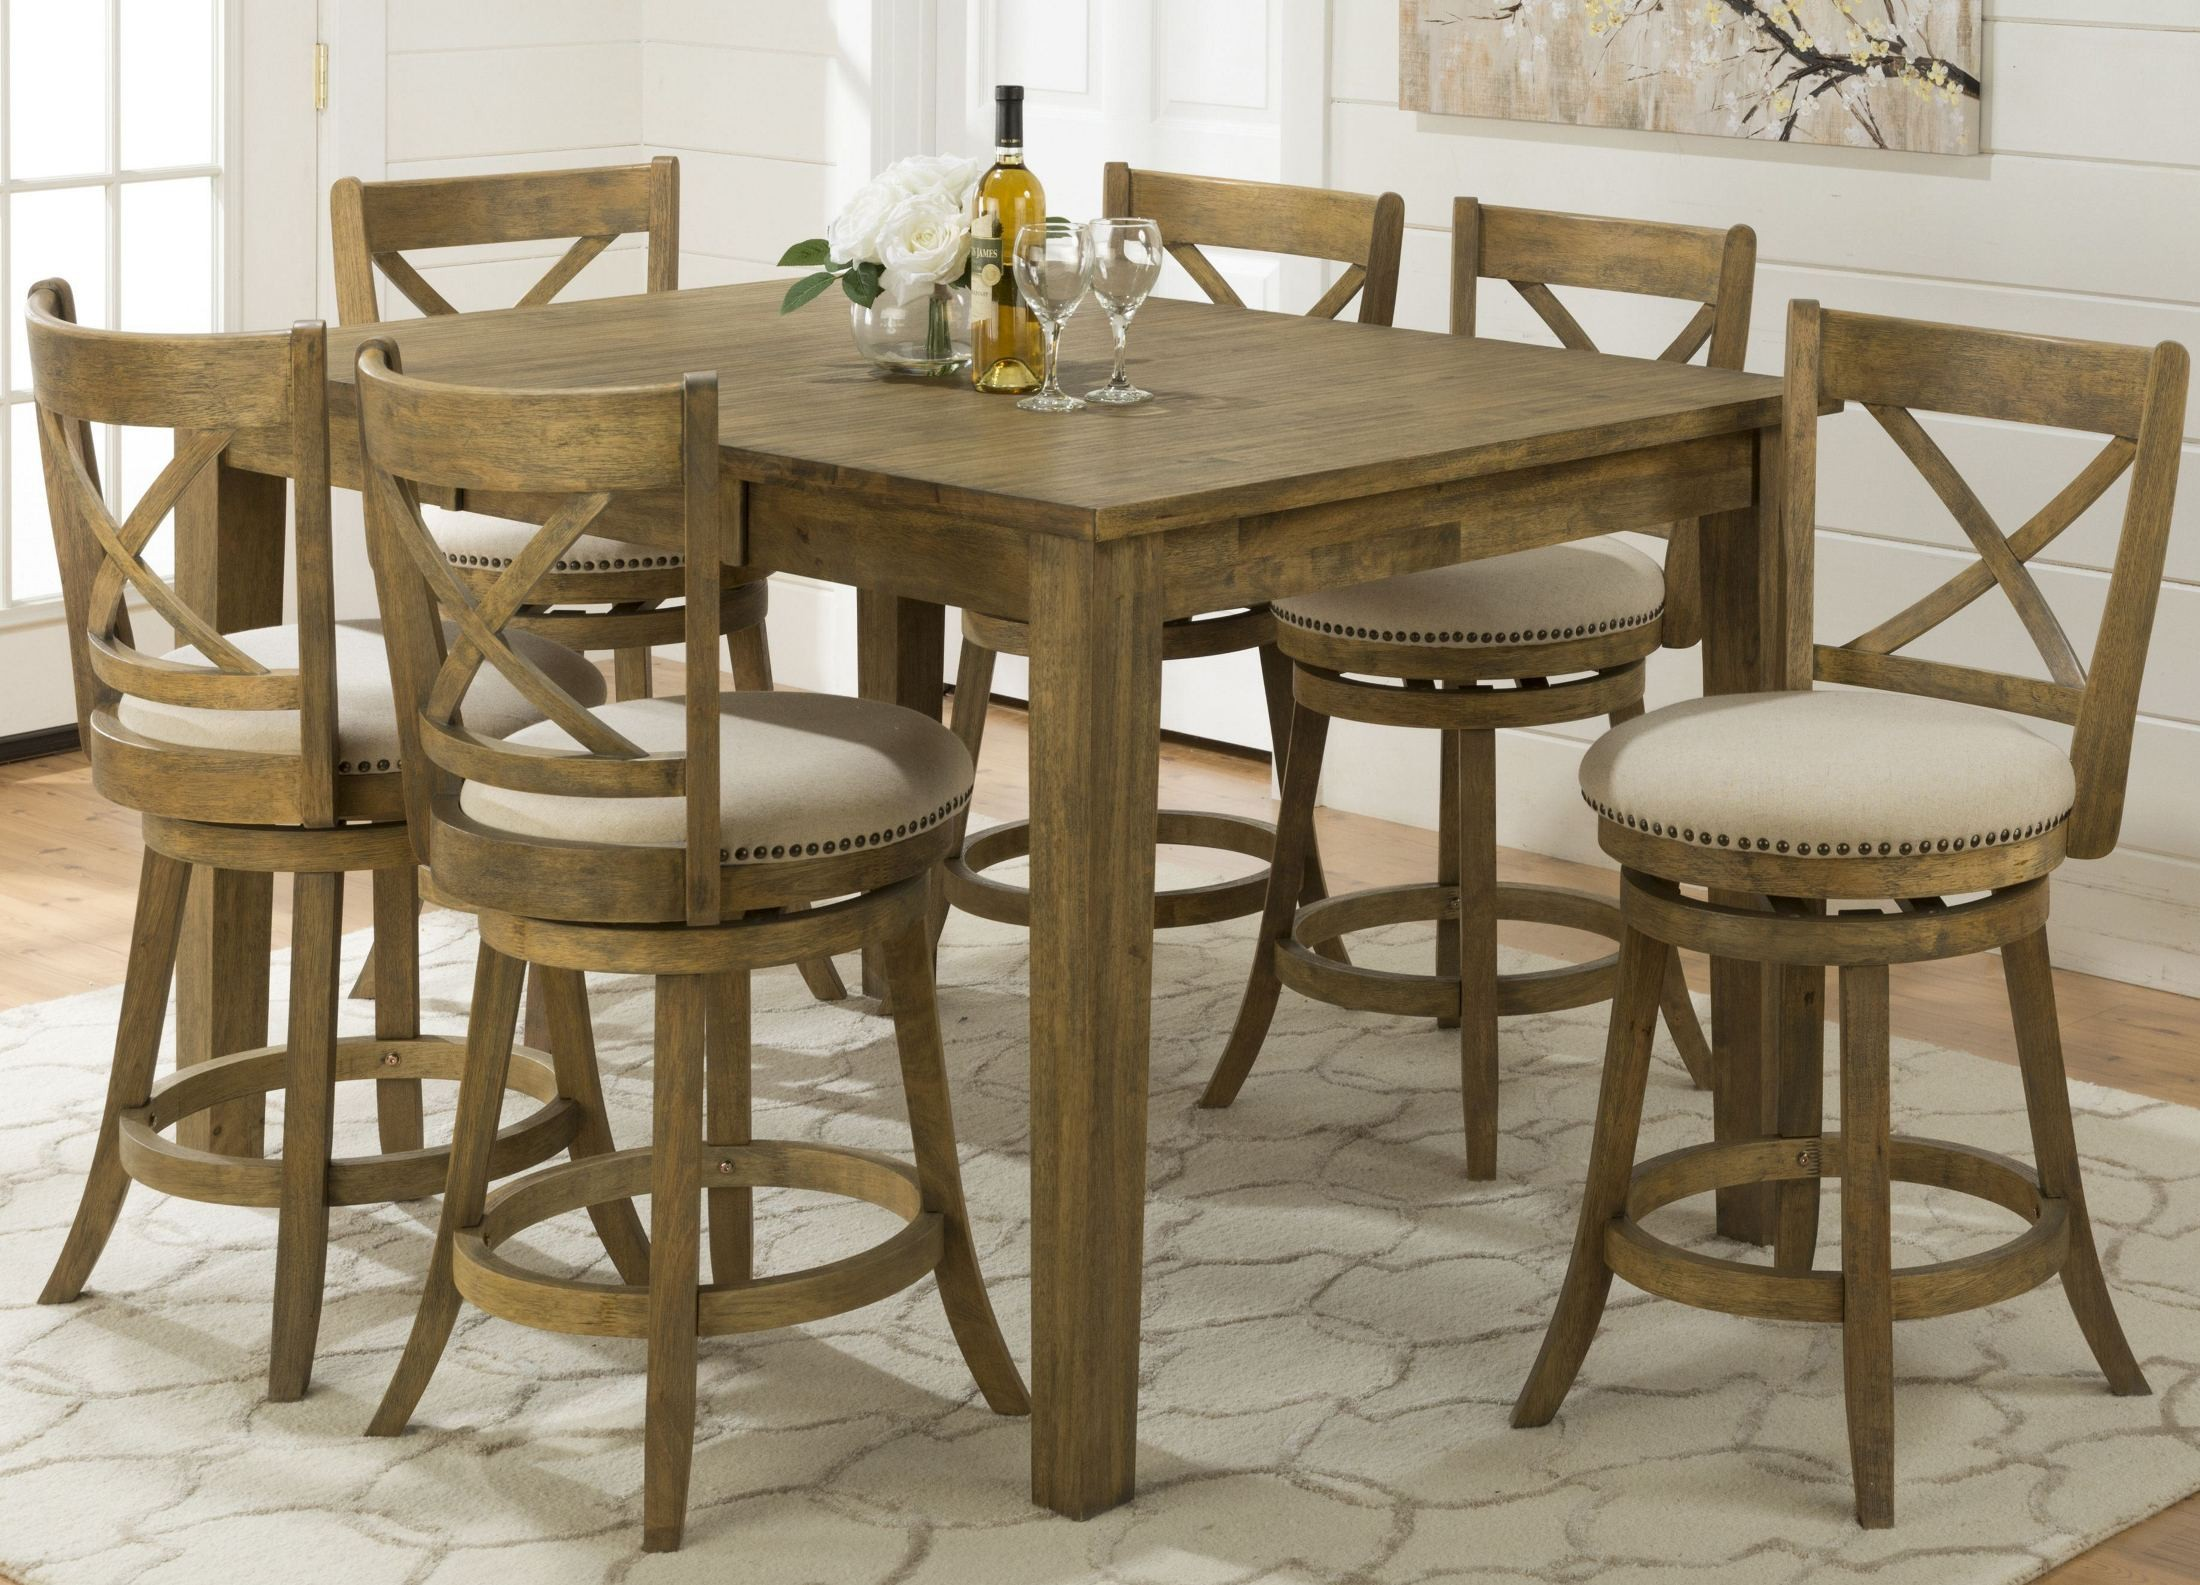 Turner 39 S Landing Extendable Counter Height Dining Room Set 916 60 Jofran